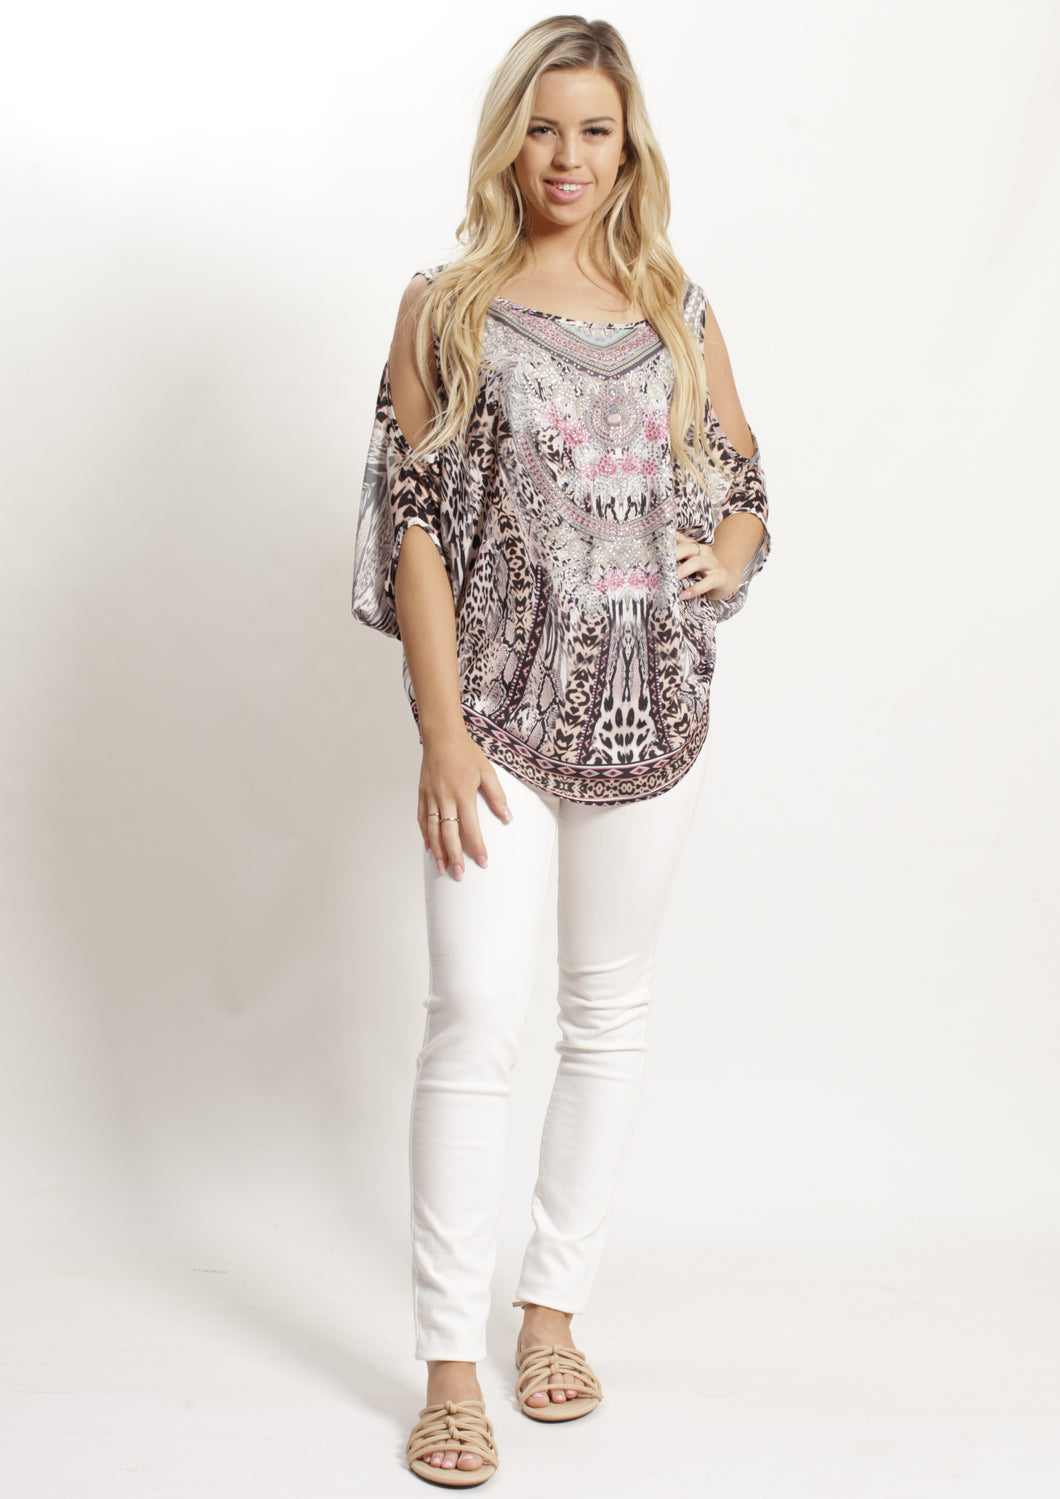 XW12317-83SS Pink Leopard Embellished Top (Pack) New Arrivals